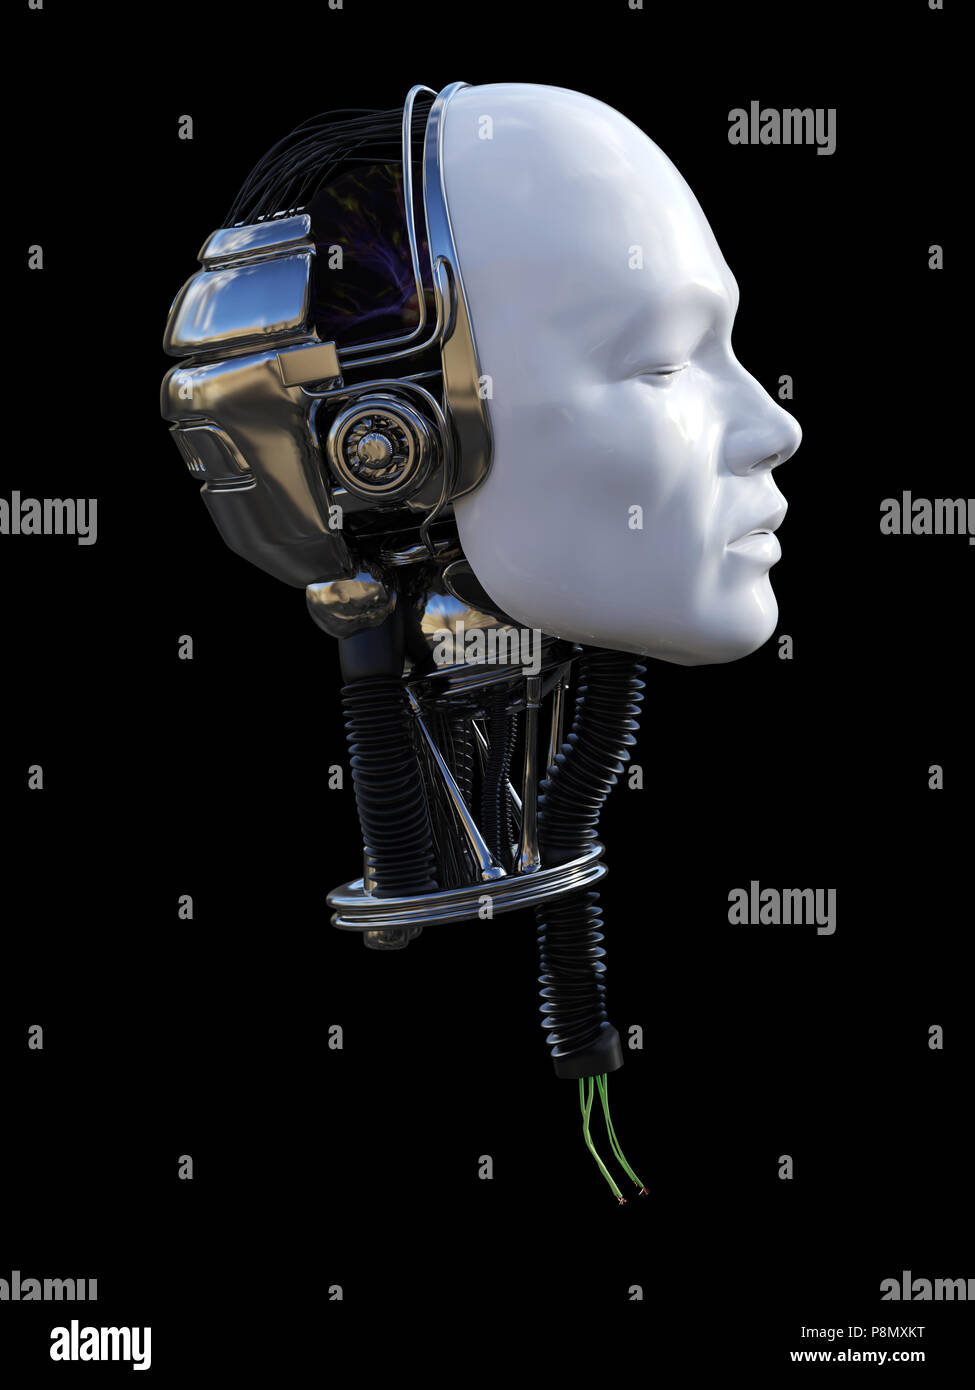 Robot With Wires In Neck Stock Photos & Robot With Wires In Neck ...